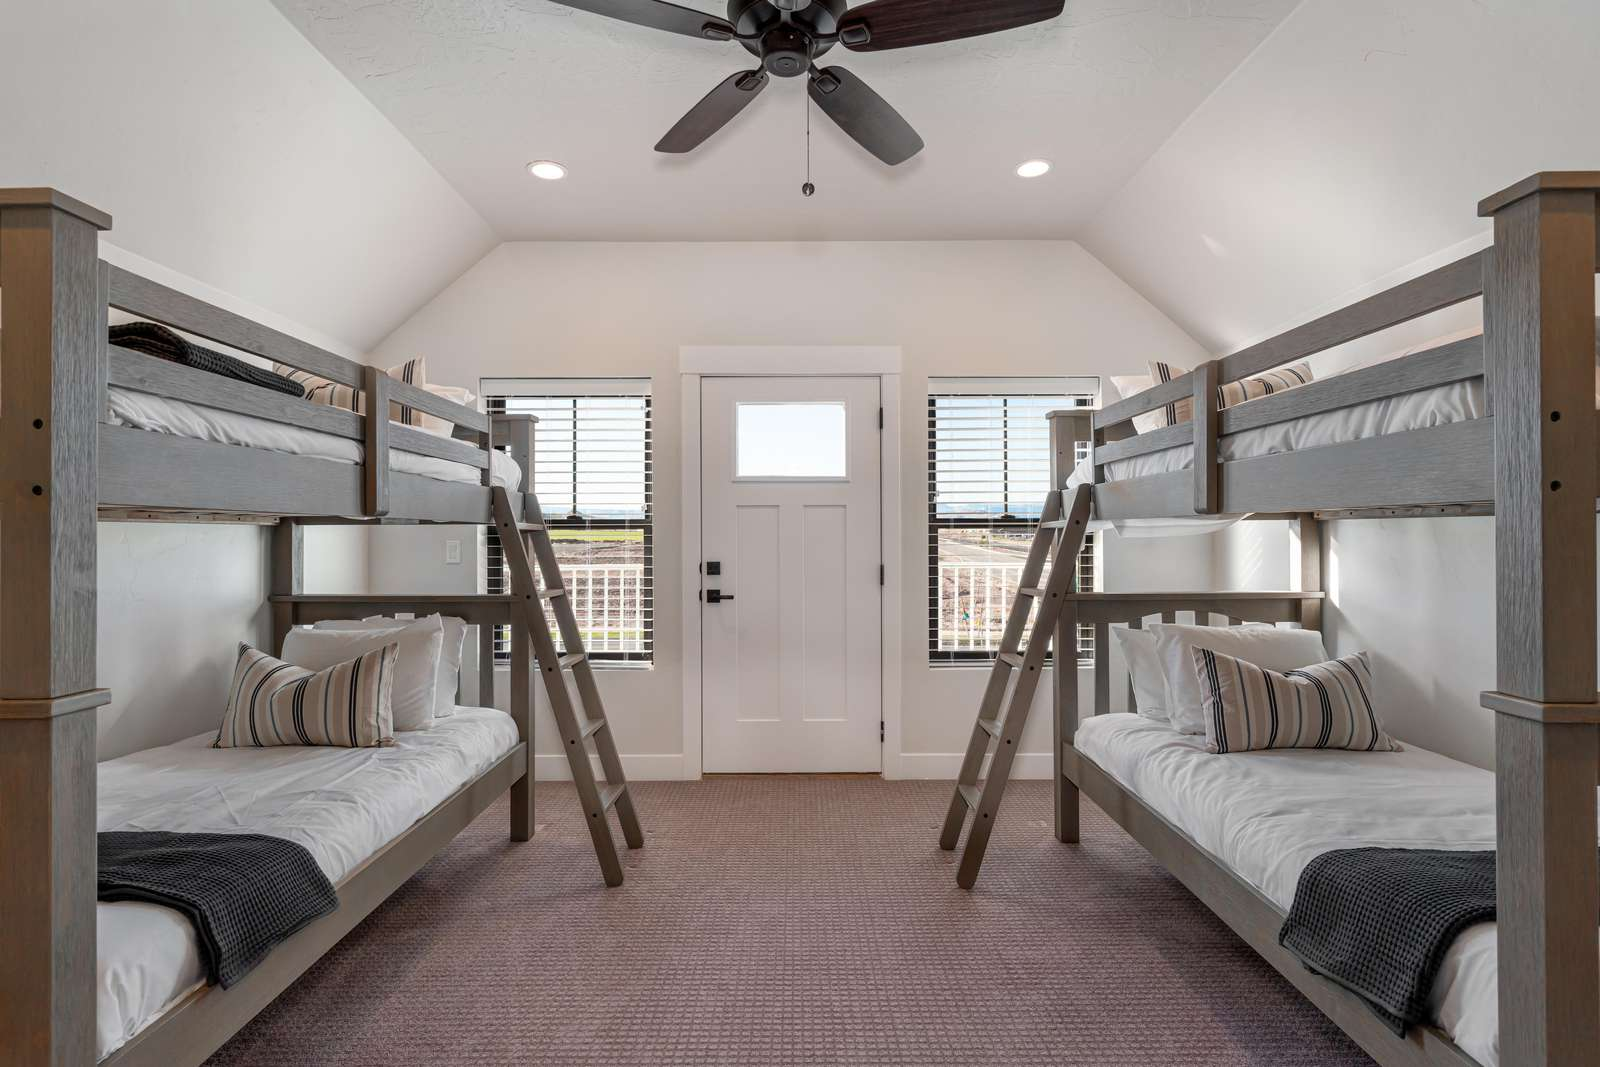 Bunk Bedroom features 2 bunkbeds and a door leading out to the front 2nd story balcony